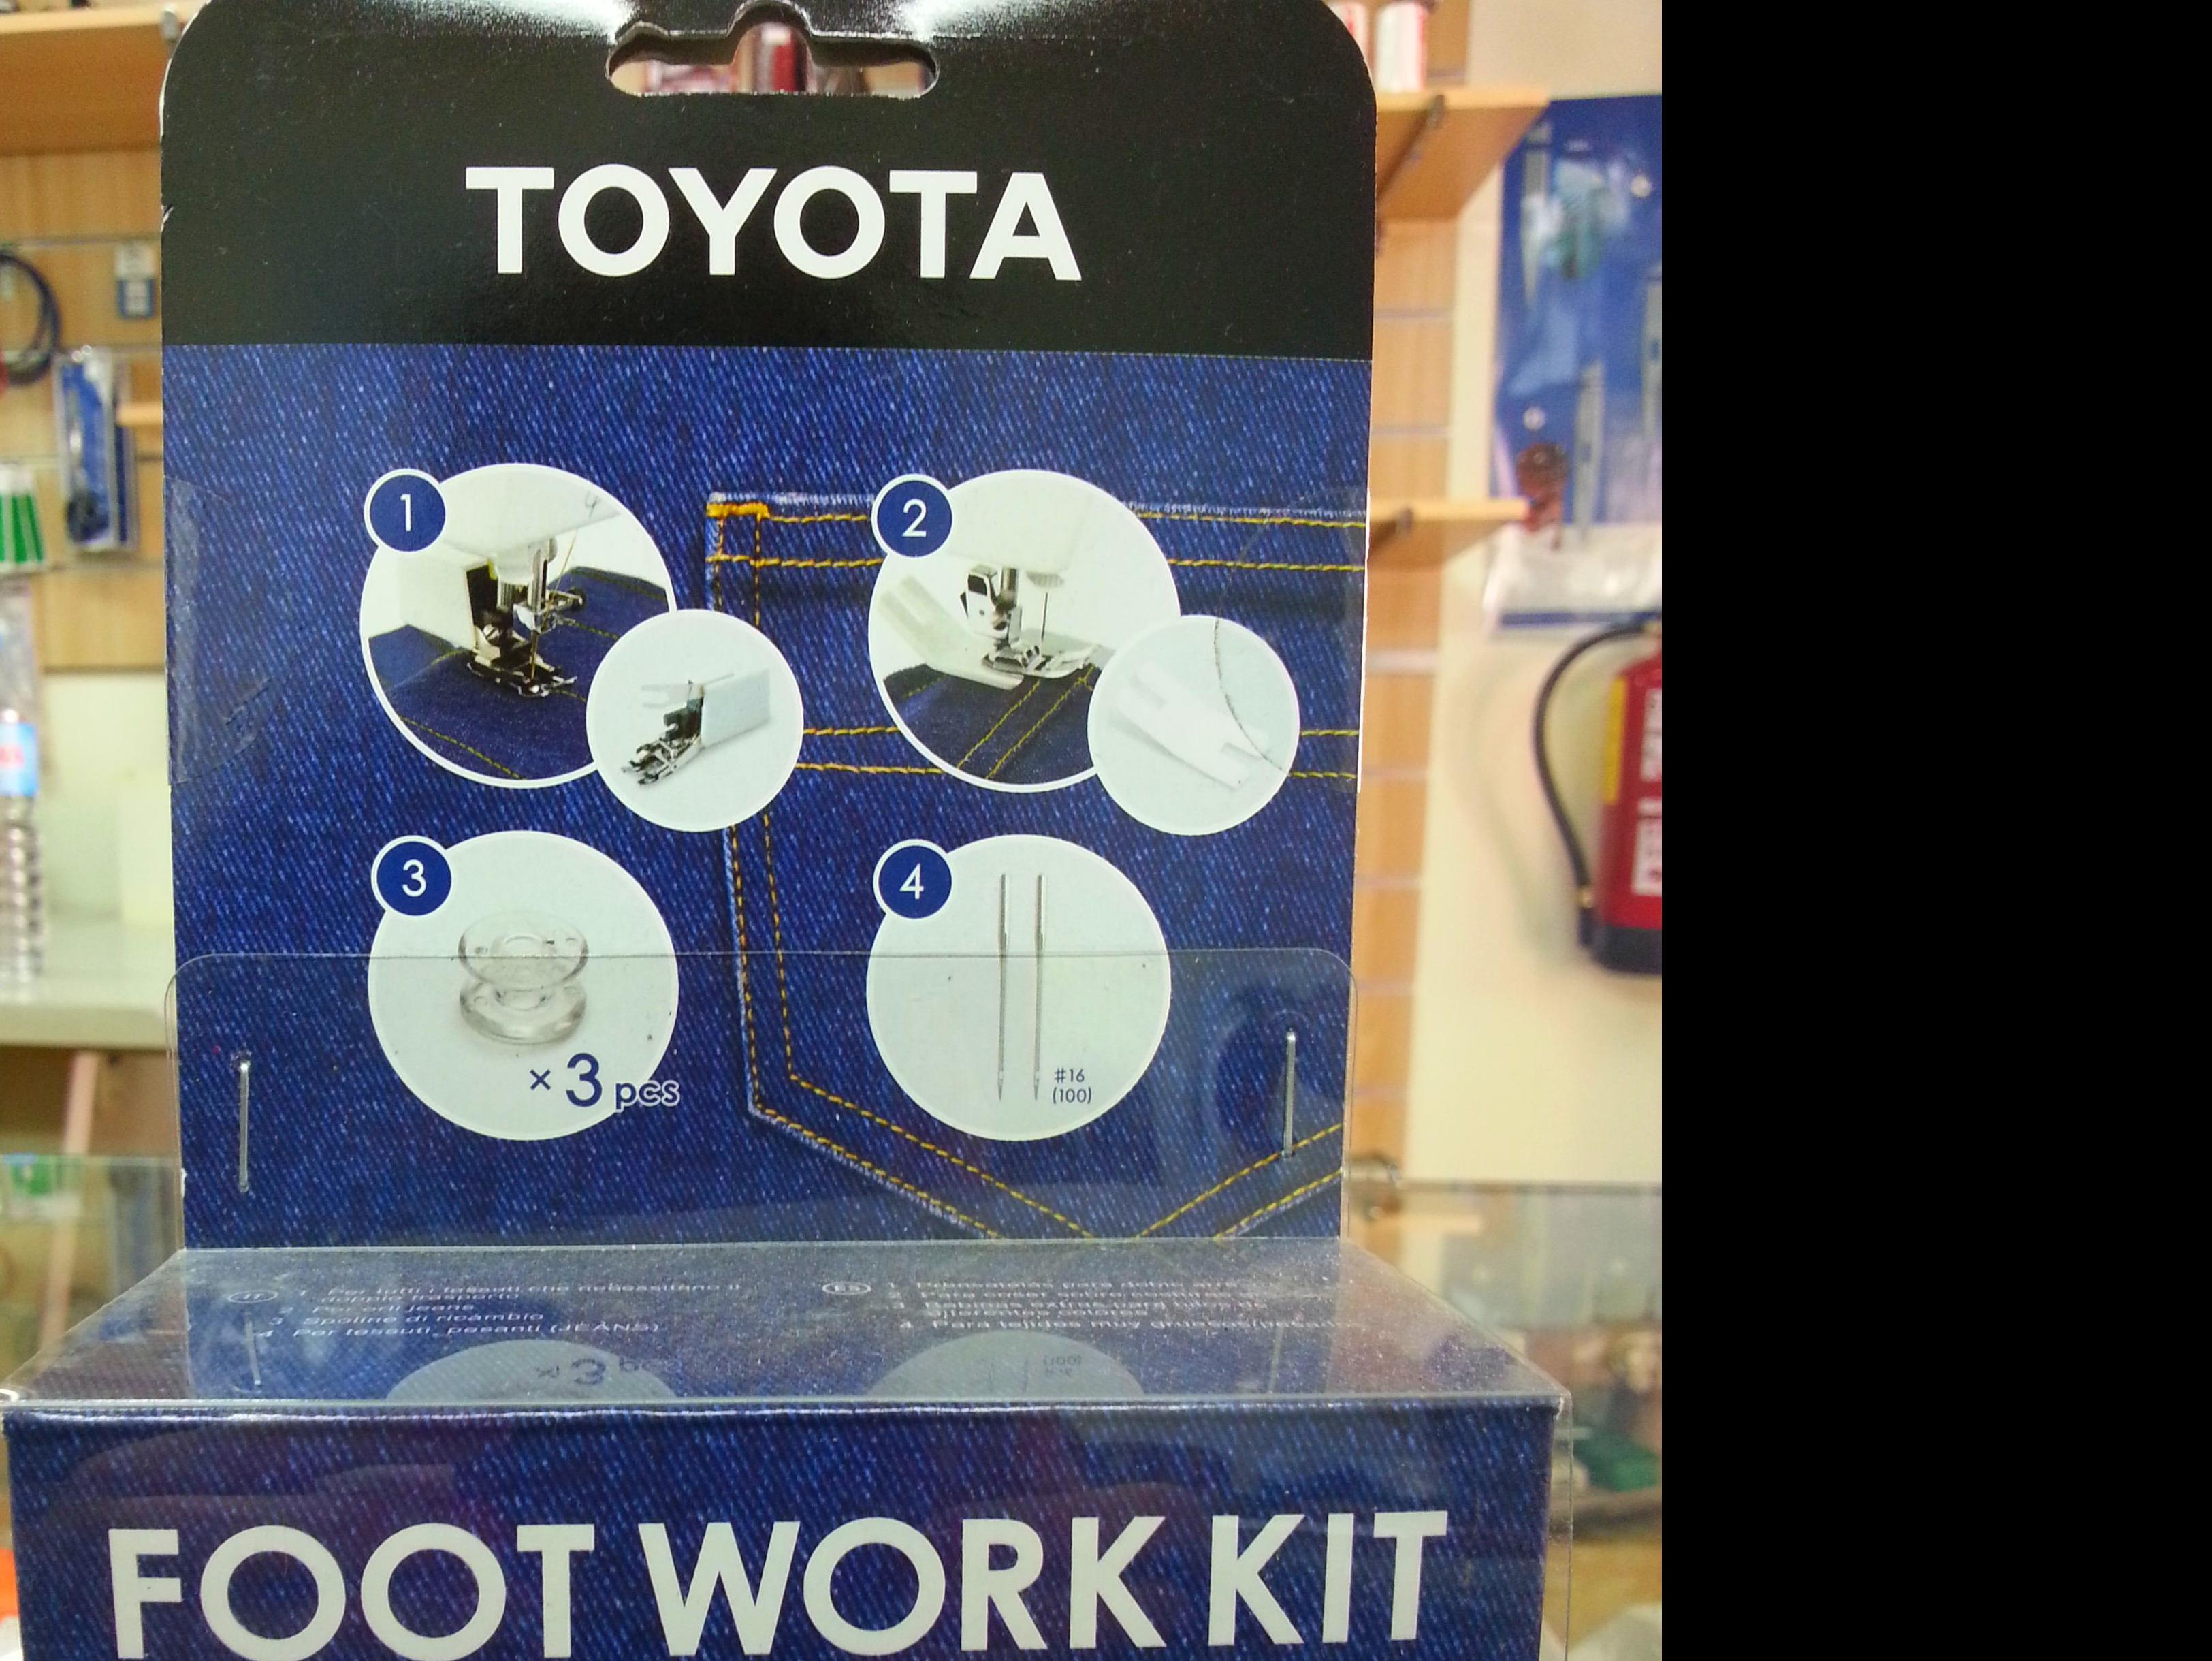 KIT TOYOTA FOOTWORK JEANS: Catálogo de Co.Ma.Tex.